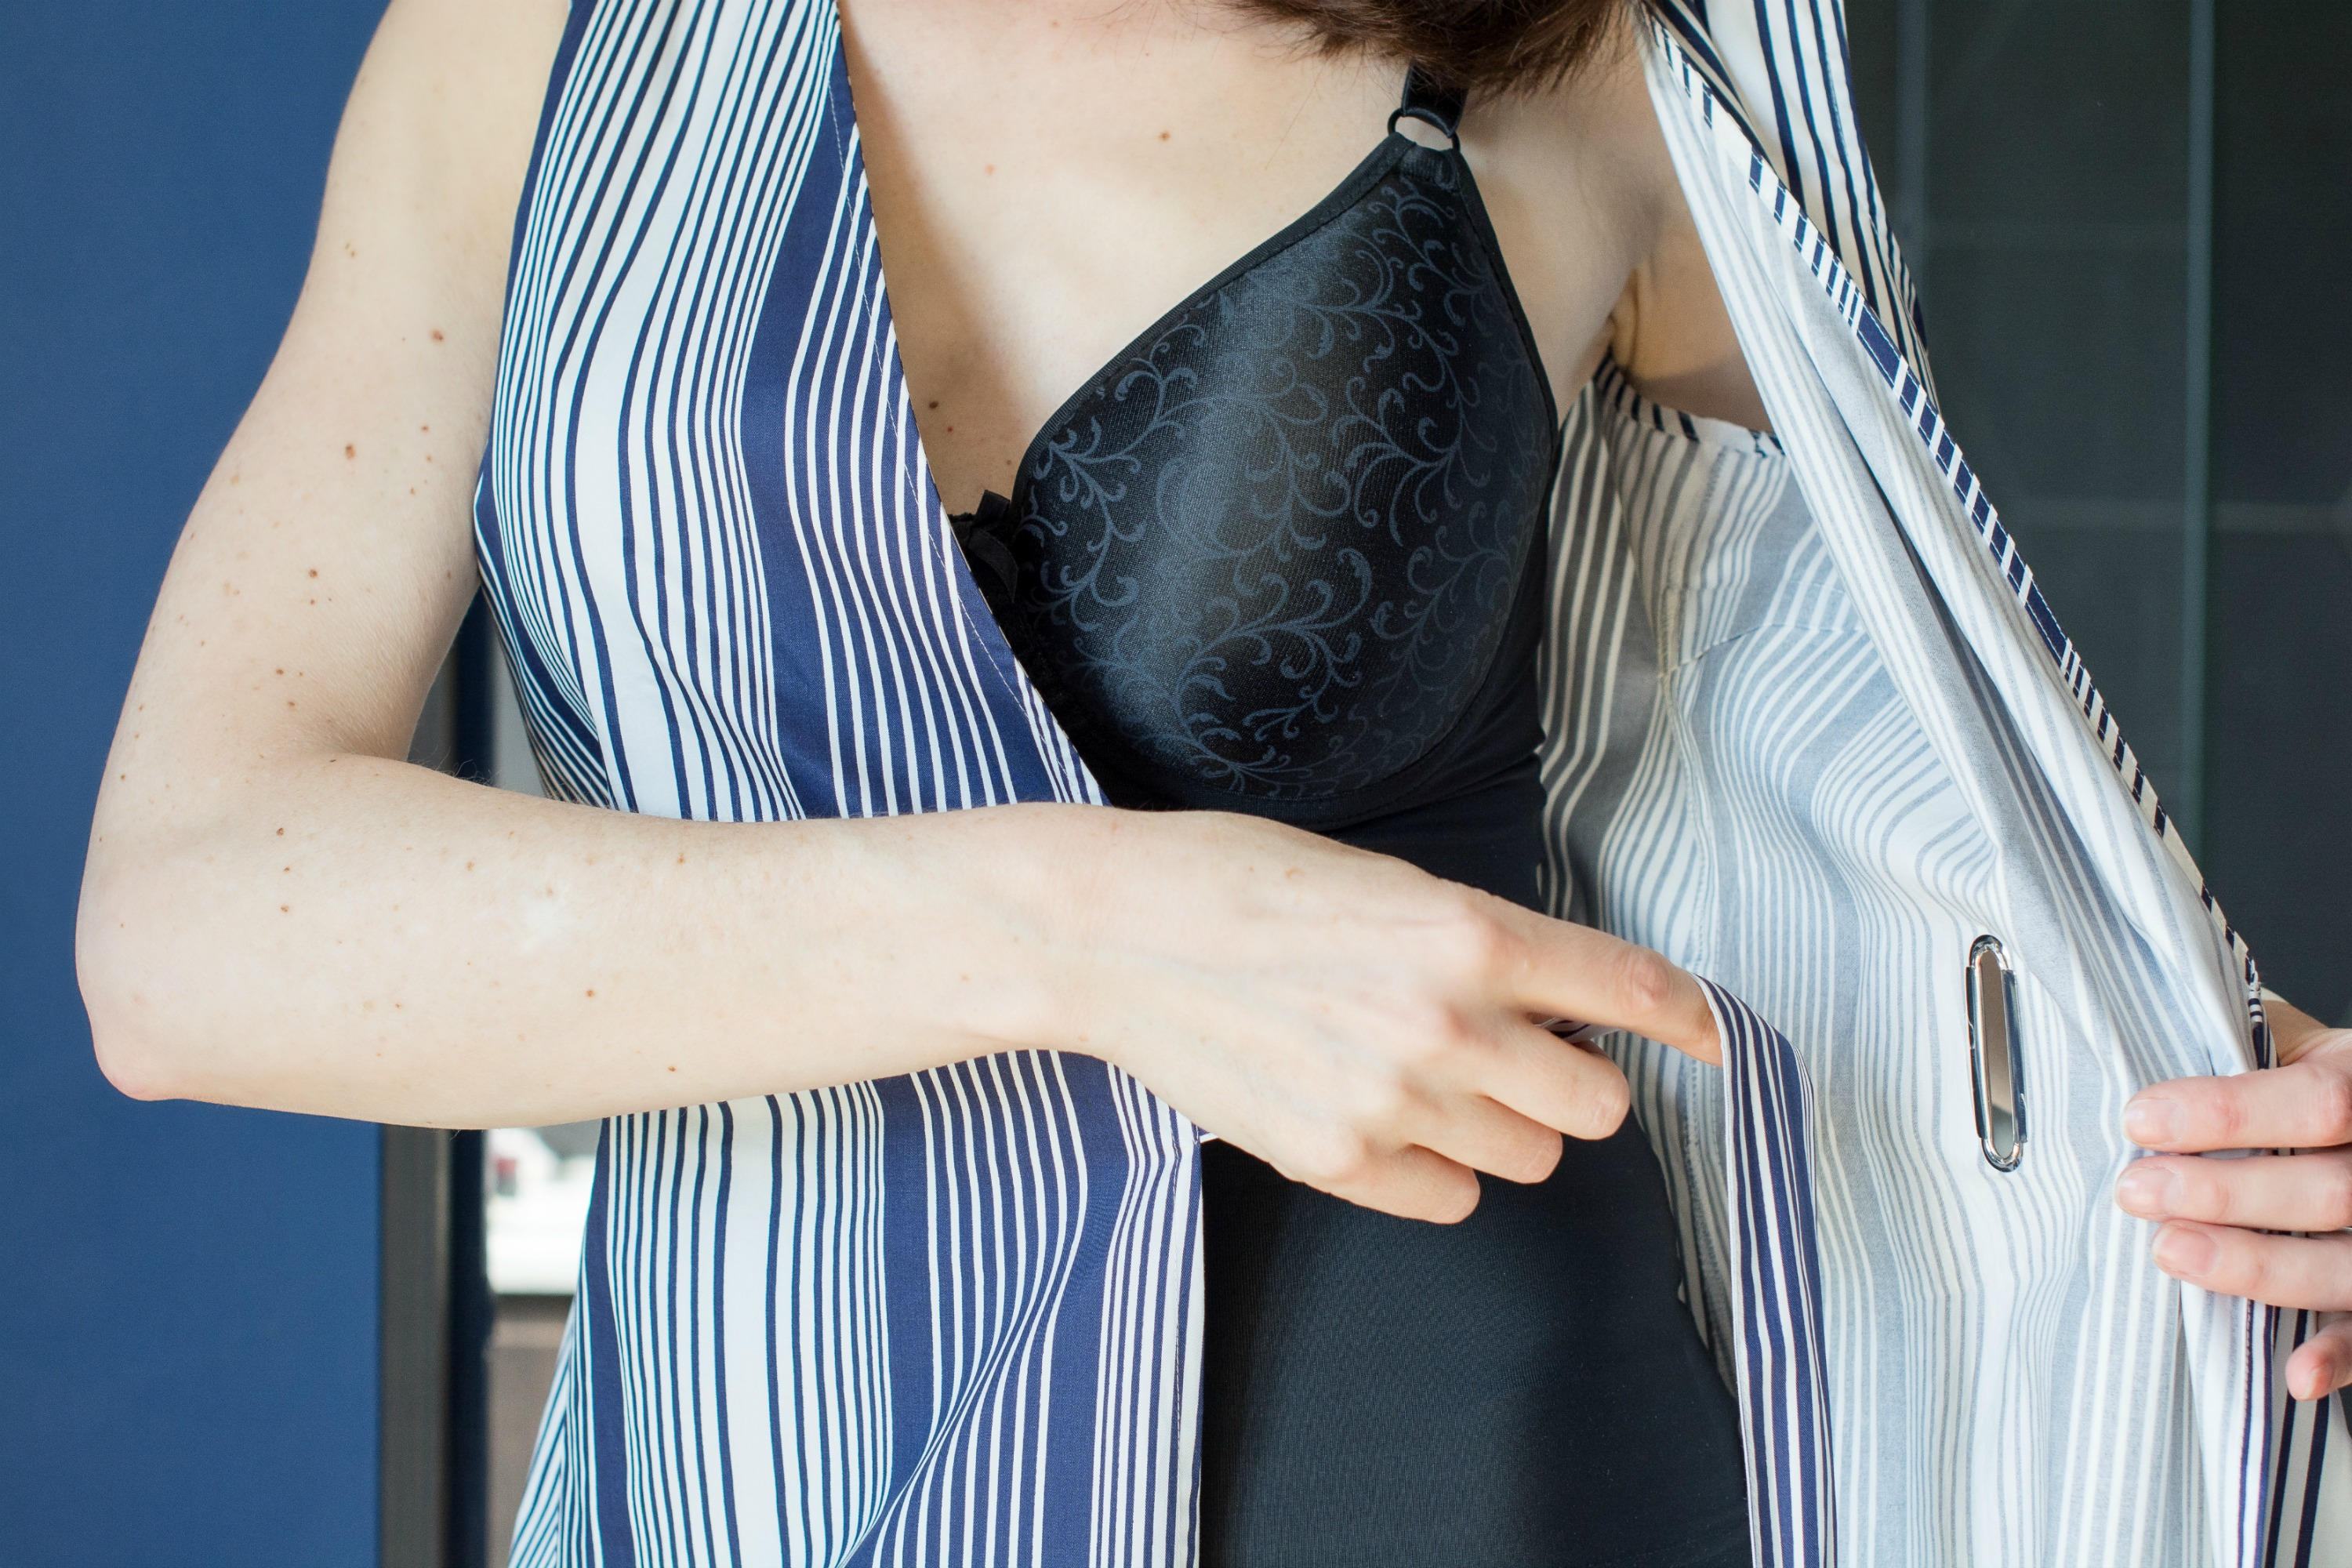 Shapeez Tankee bra for a smooth line under a wrap dress